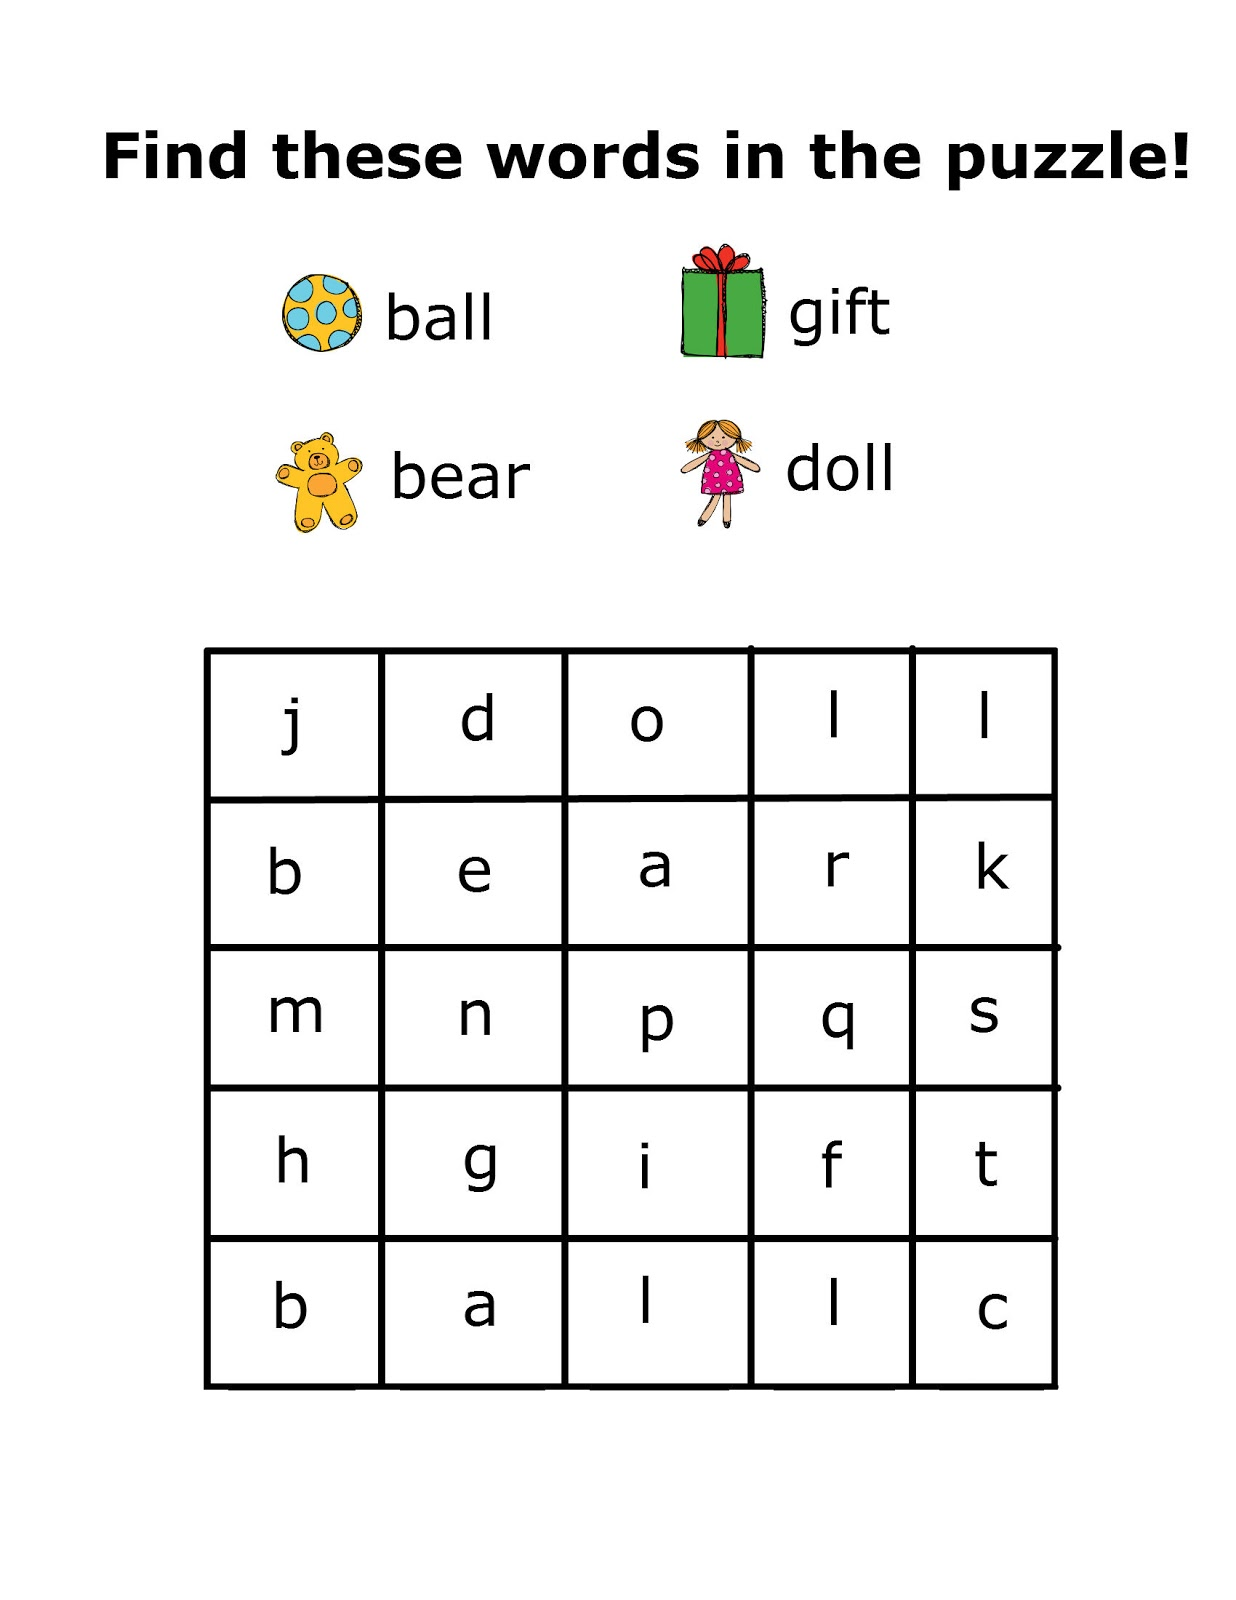 picture regarding Kindergarten Word Search Printable known as Cost-free Printable Kindergarten Phrase Glance Puzzles totally free impression